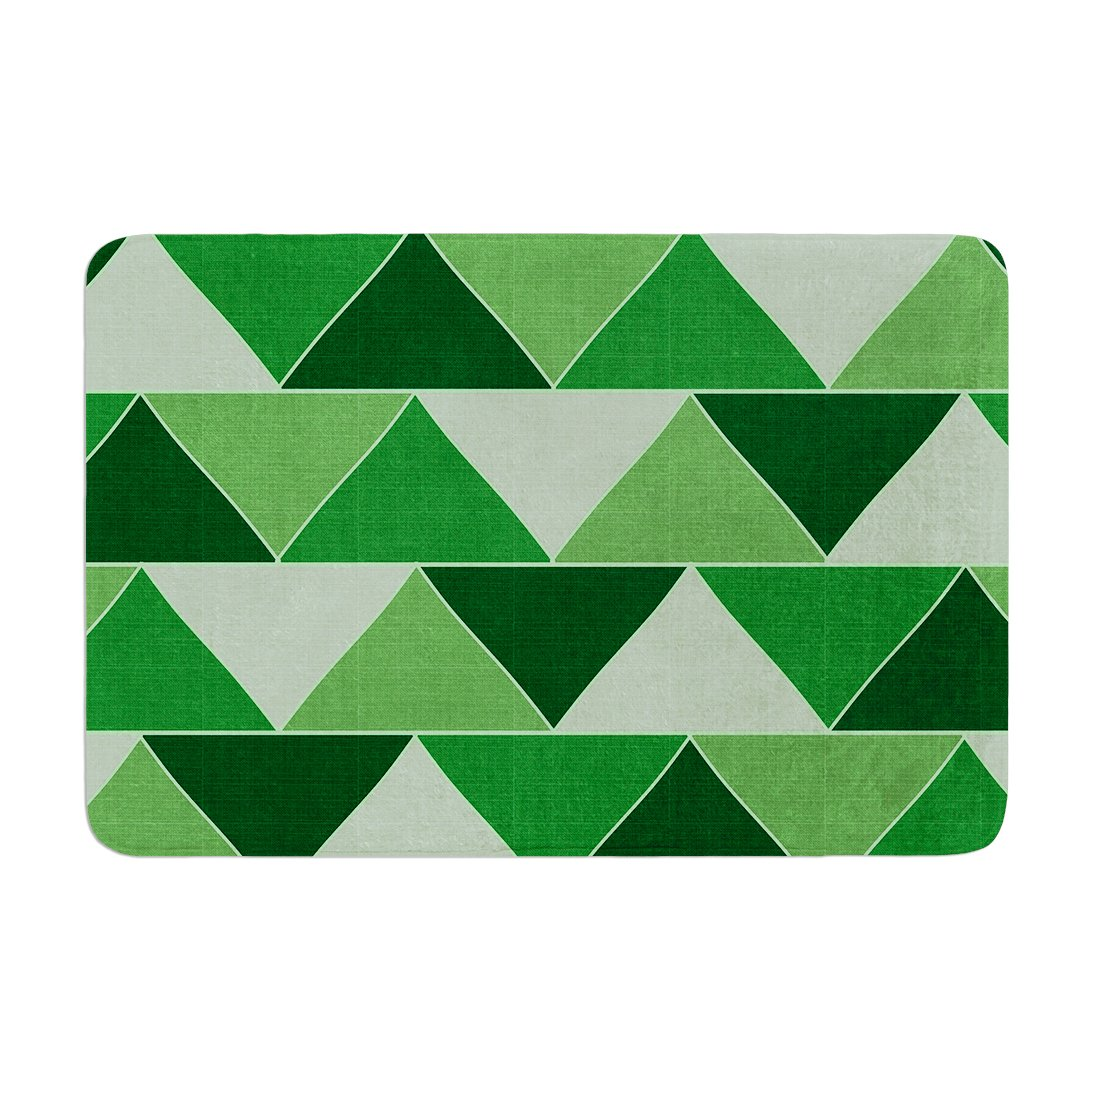 Kess InHouse Catherine McDonald Emerald City Memory Foam Bath Mat 17 by 24